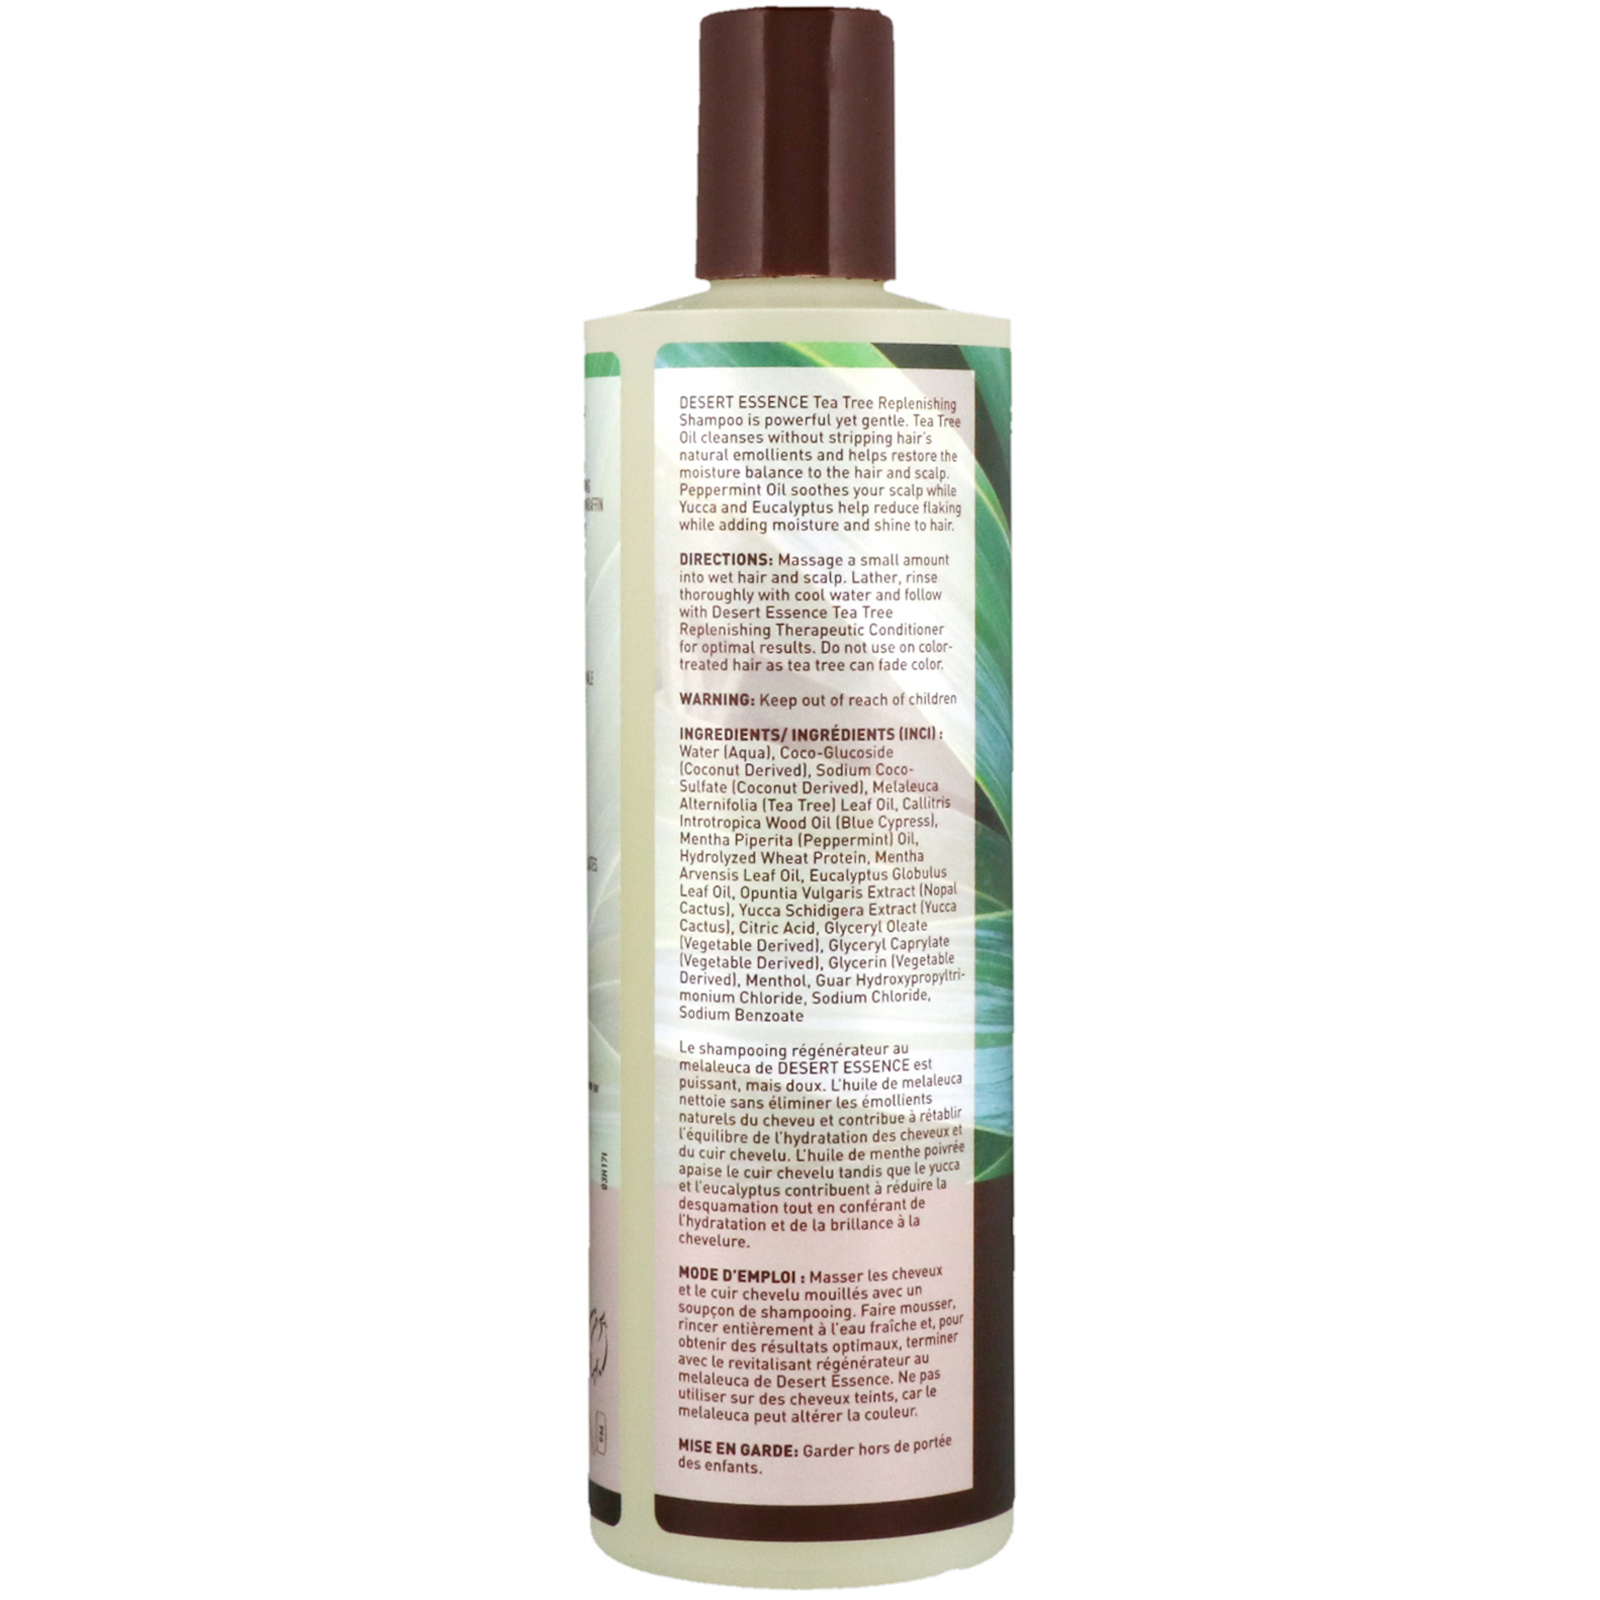 Desert Essence Tea Tree Replenishing Shampoo 12 9 Fl Oz 382 Ml